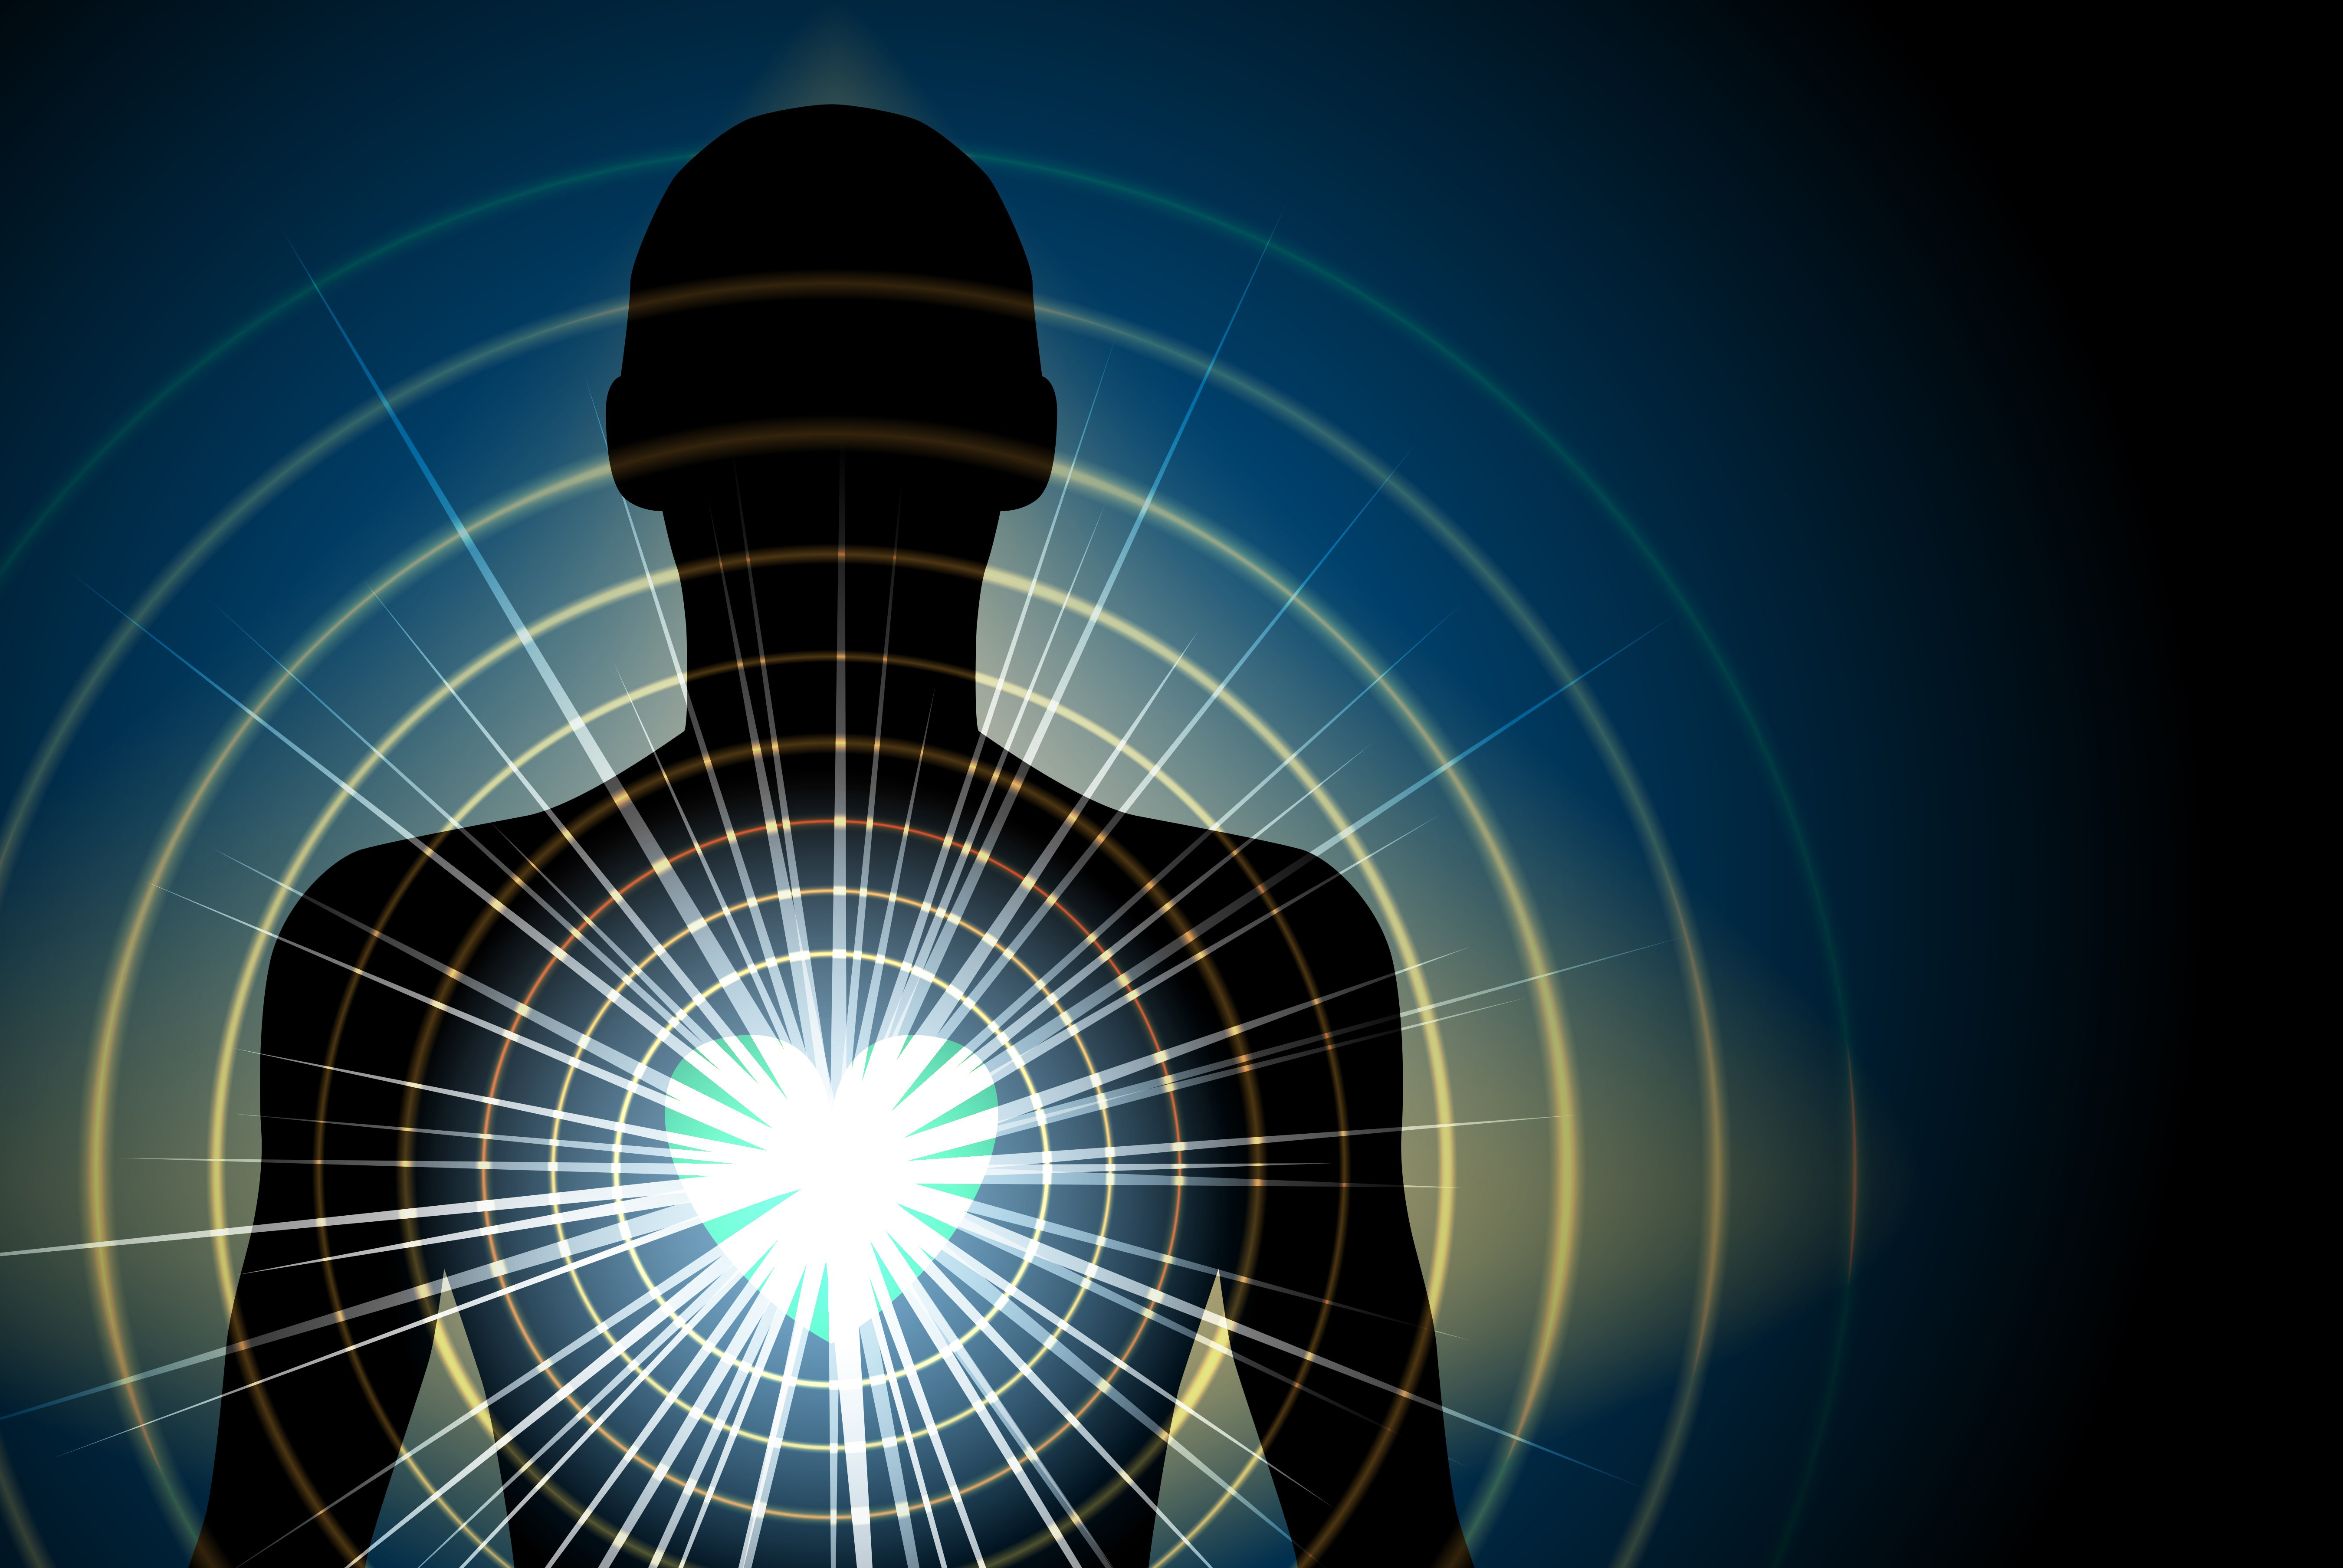 Energy healing for negativity and bad energy